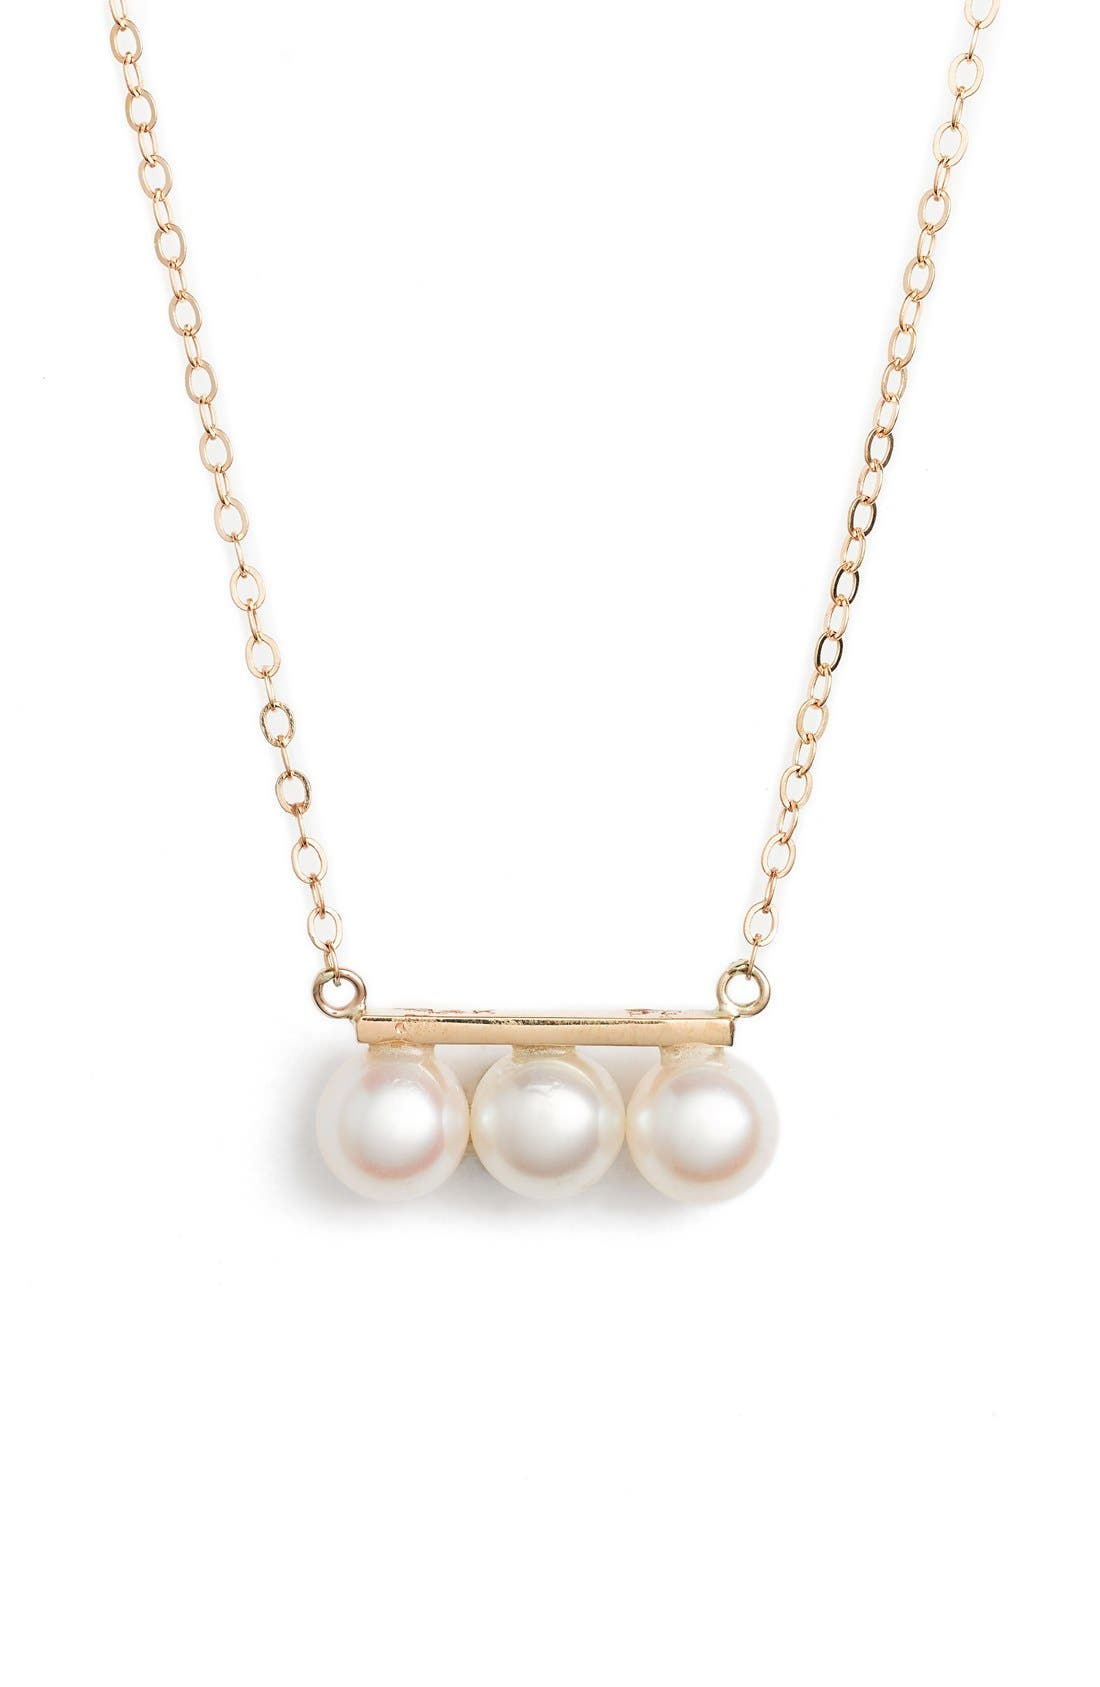 Triple Pearl Pendant Necklace,                             Main thumbnail 1, color,                             YELLOW GOLD/ WHITE PEARL